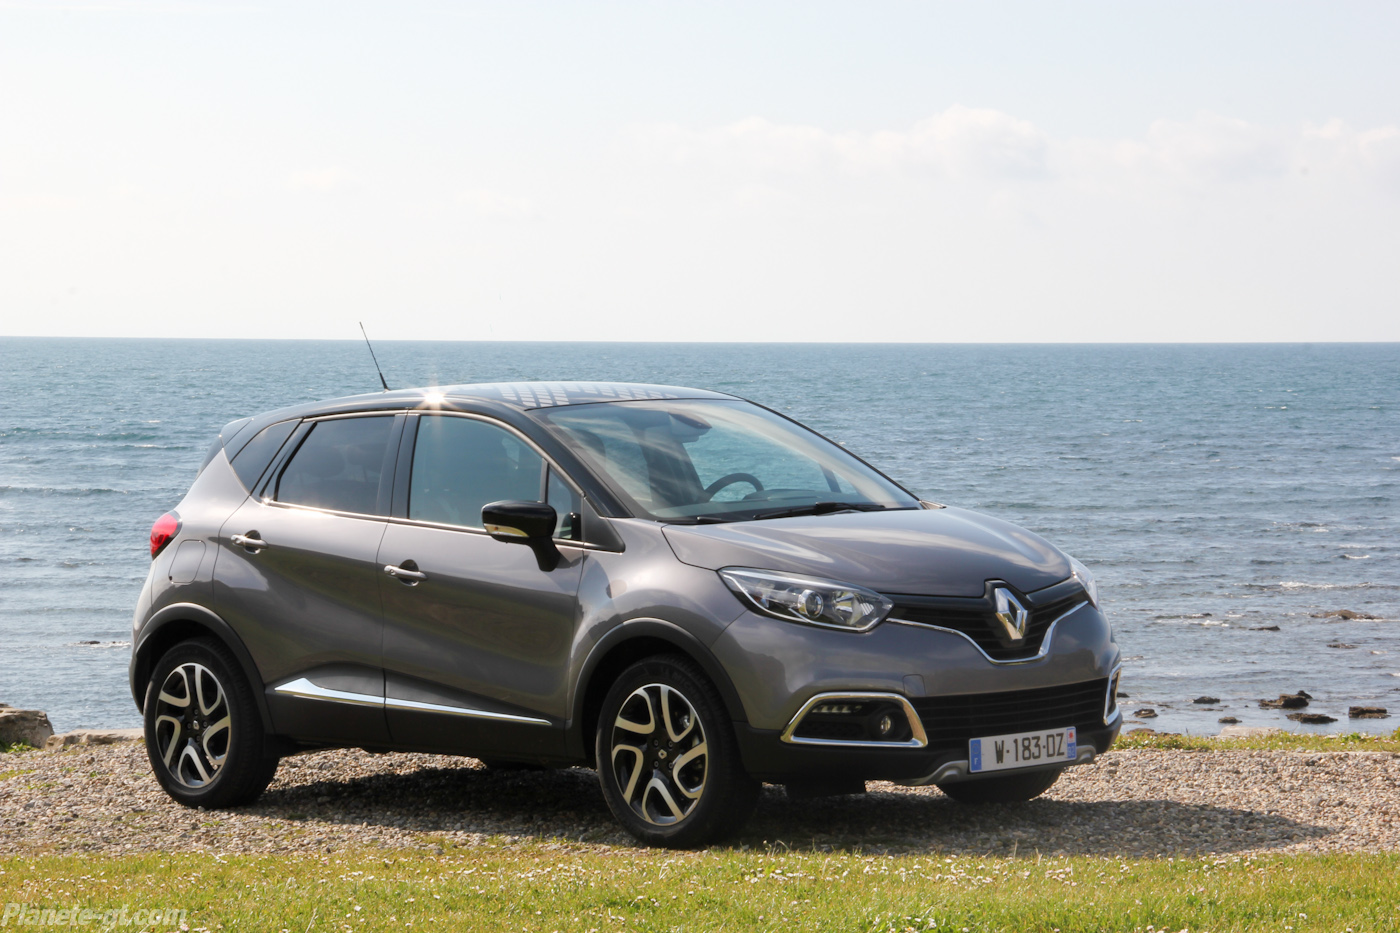 essai video renault captur photos 14 plan te. Black Bedroom Furniture Sets. Home Design Ideas